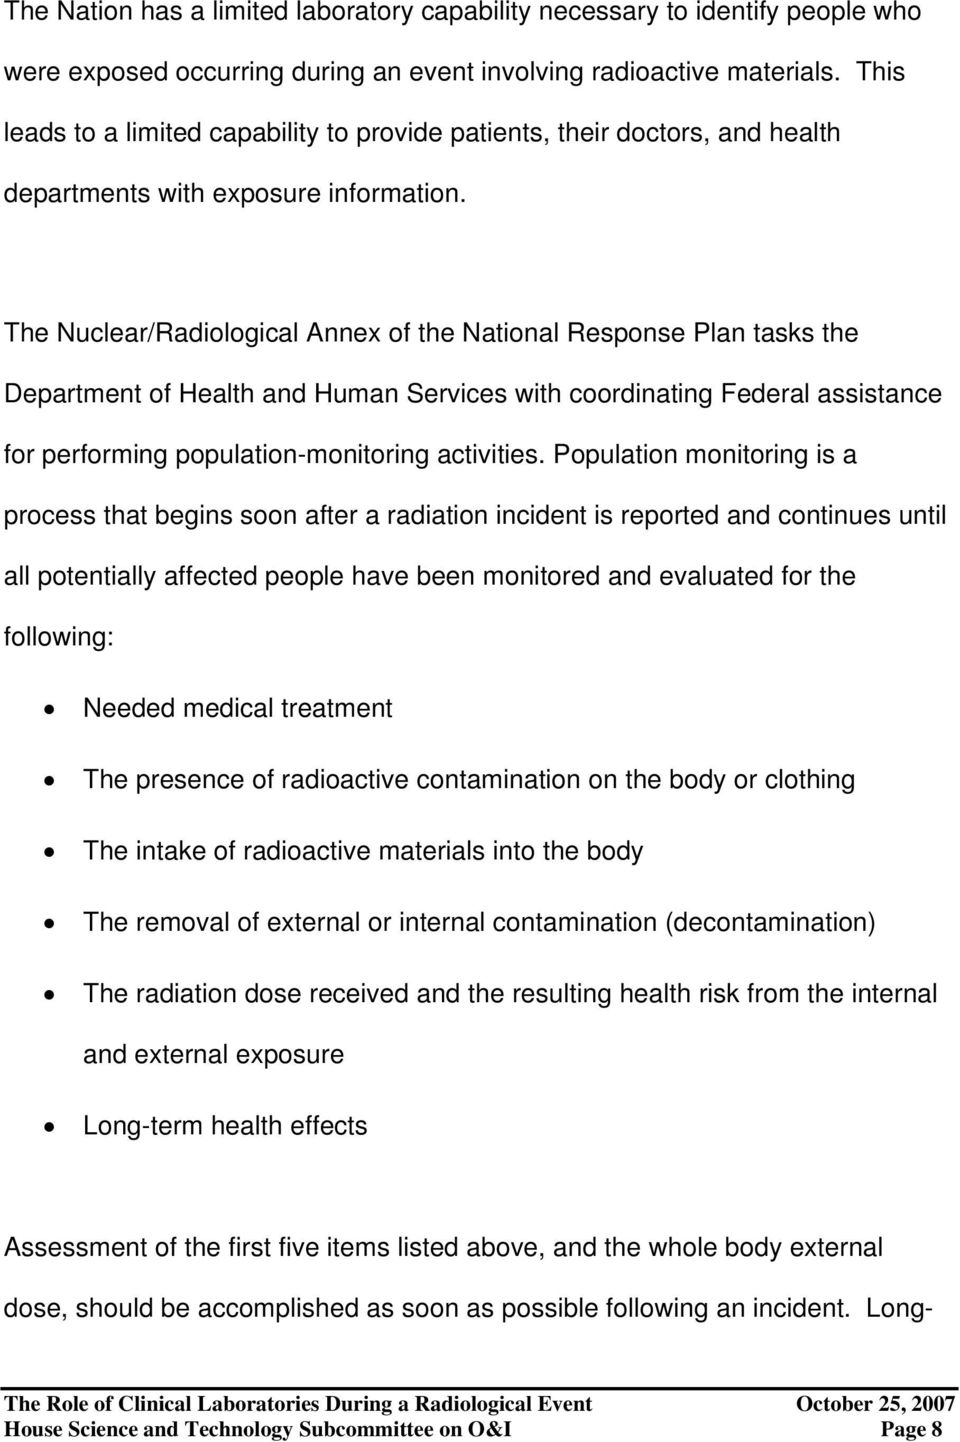 The Nuclear/Radiological Annex of the National Response Plan tasks the Department of Health and Human Services with coordinating Federal assistance for performing population-monitoring activities.